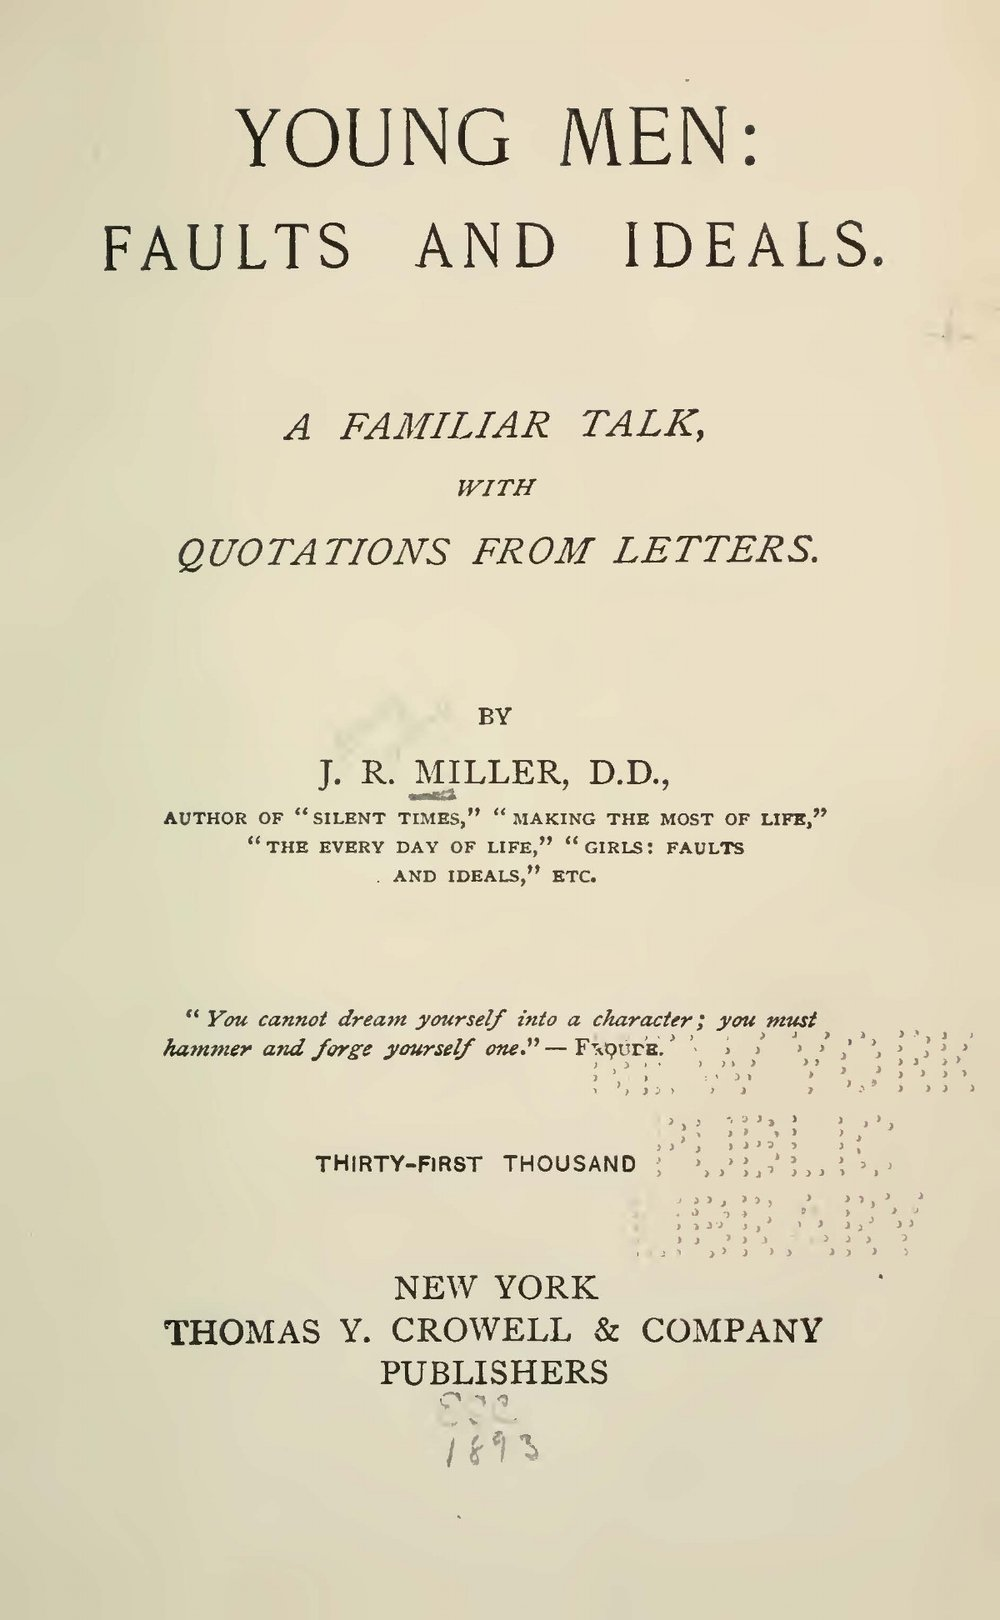 Miller, James Russell, Young Men Faults and Ideals Title Page.jpg